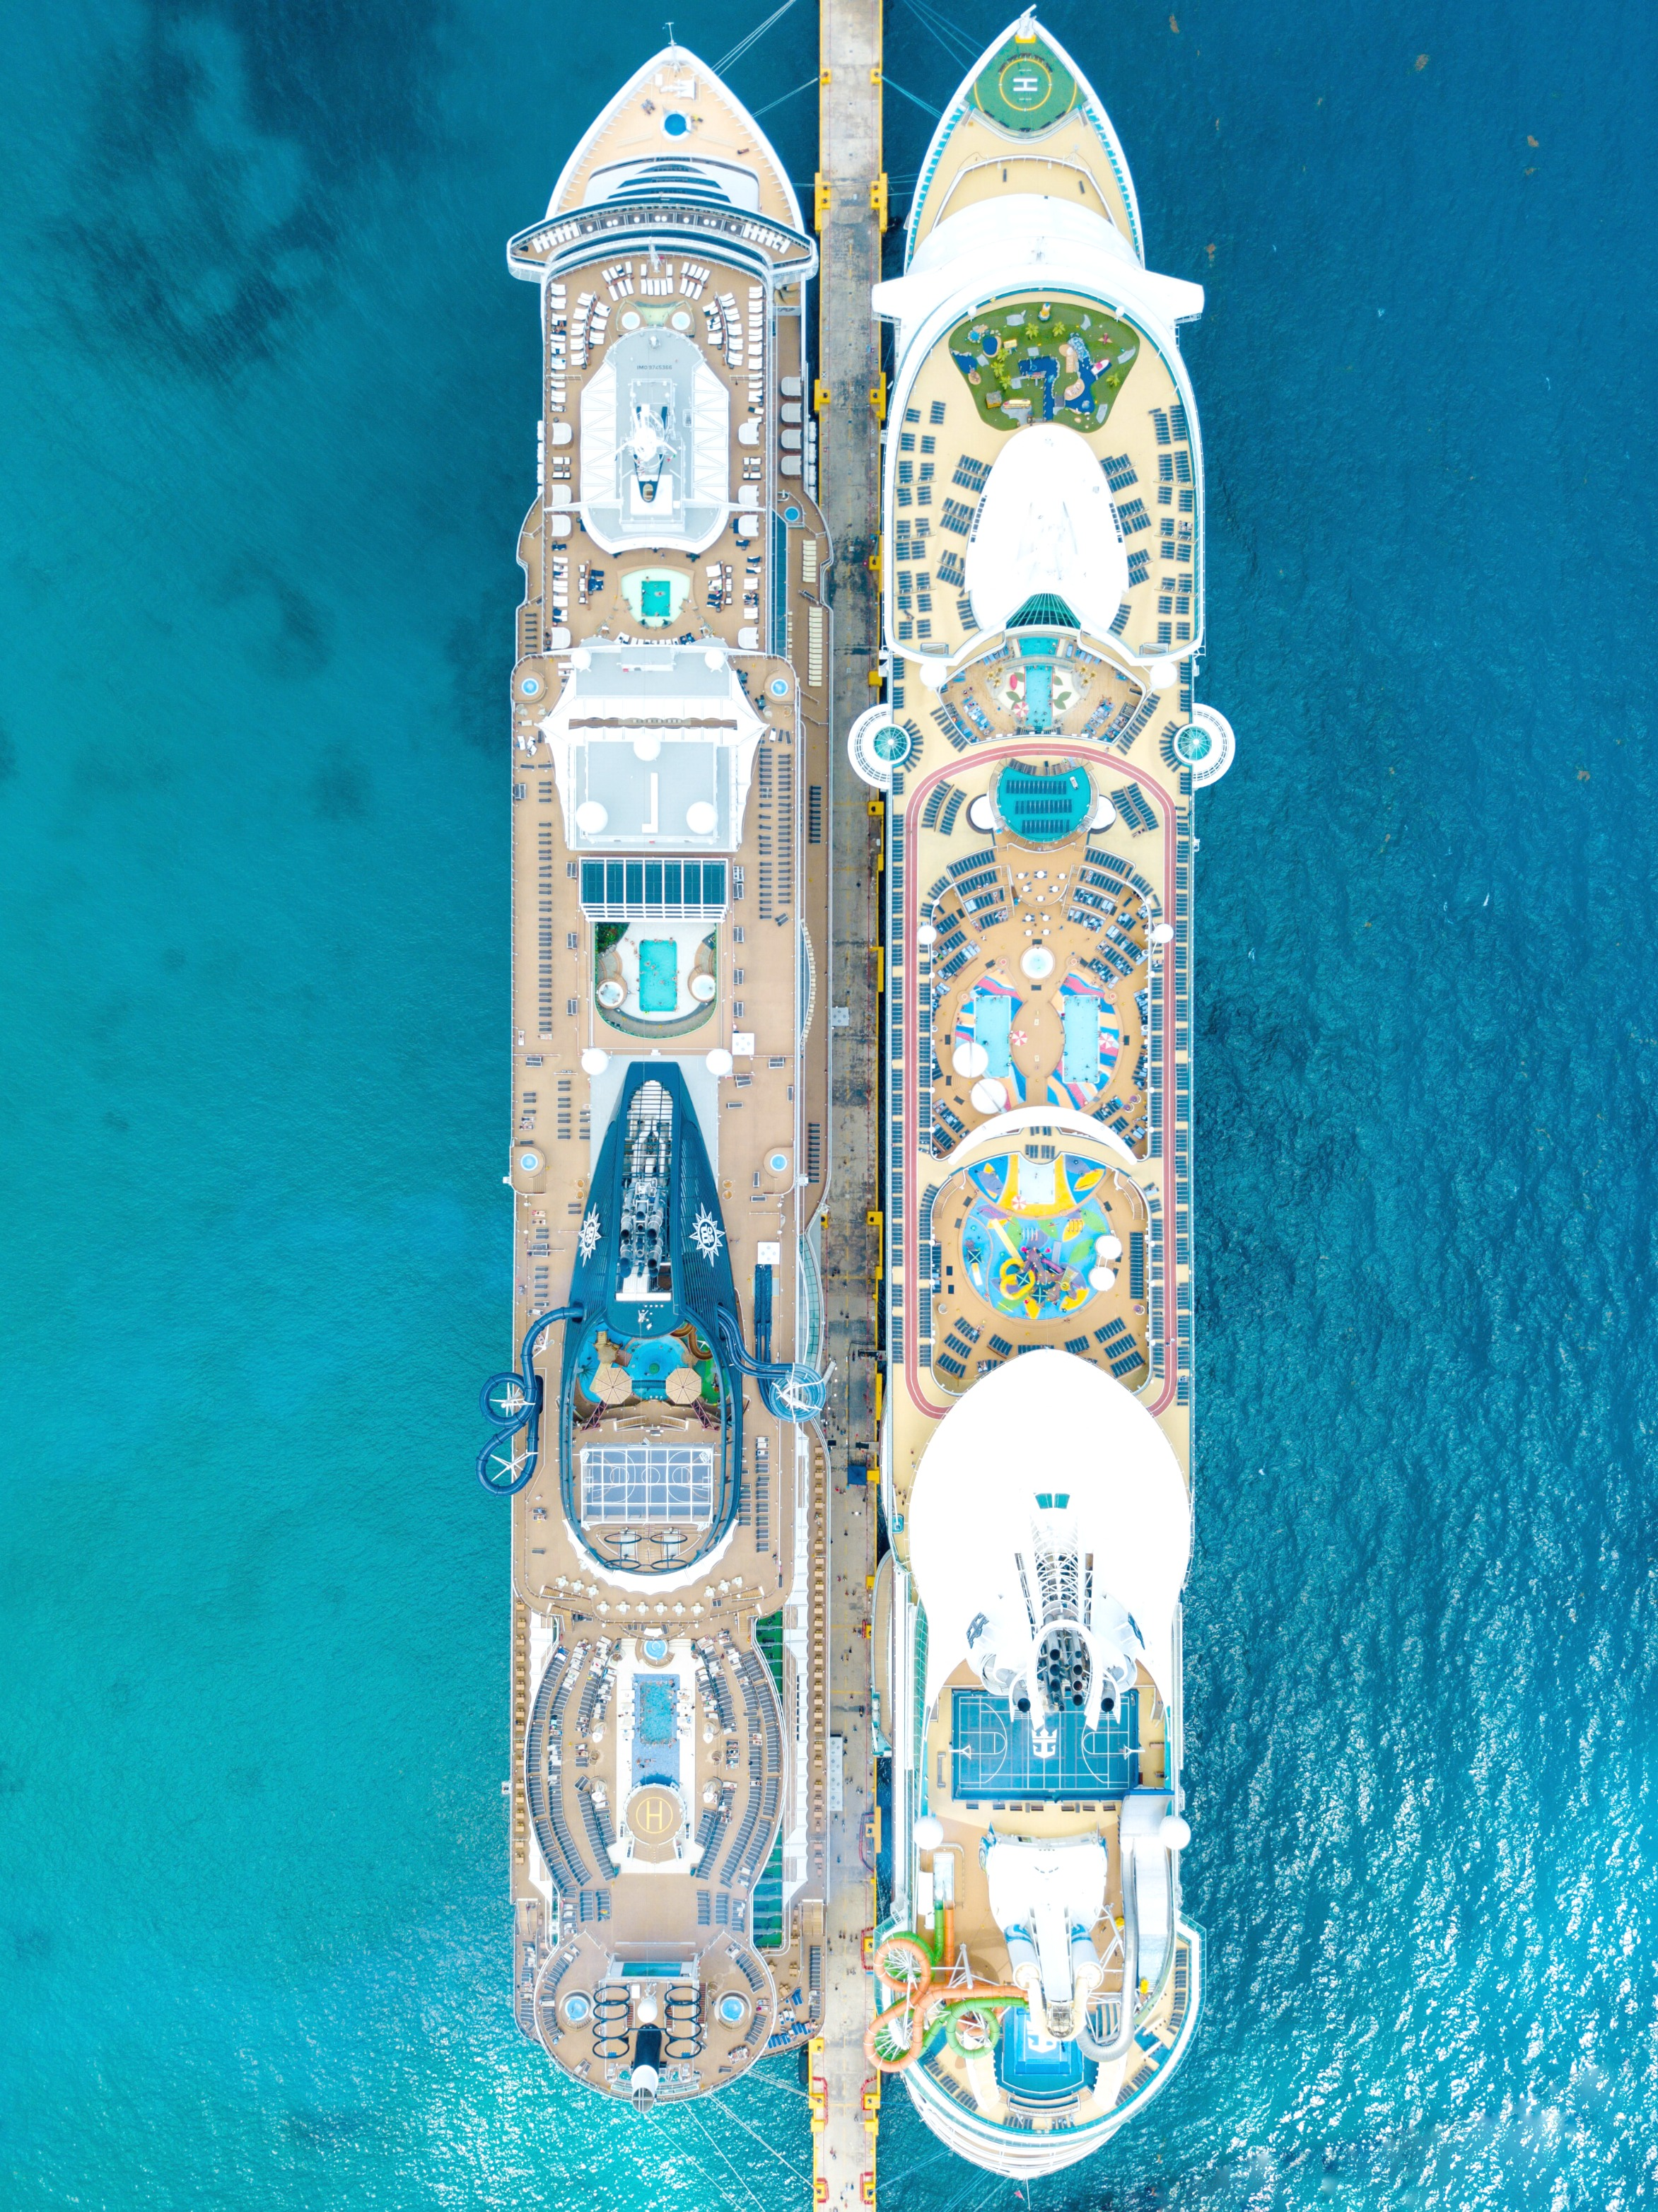 A bird's eye view of cruise ships at a port.